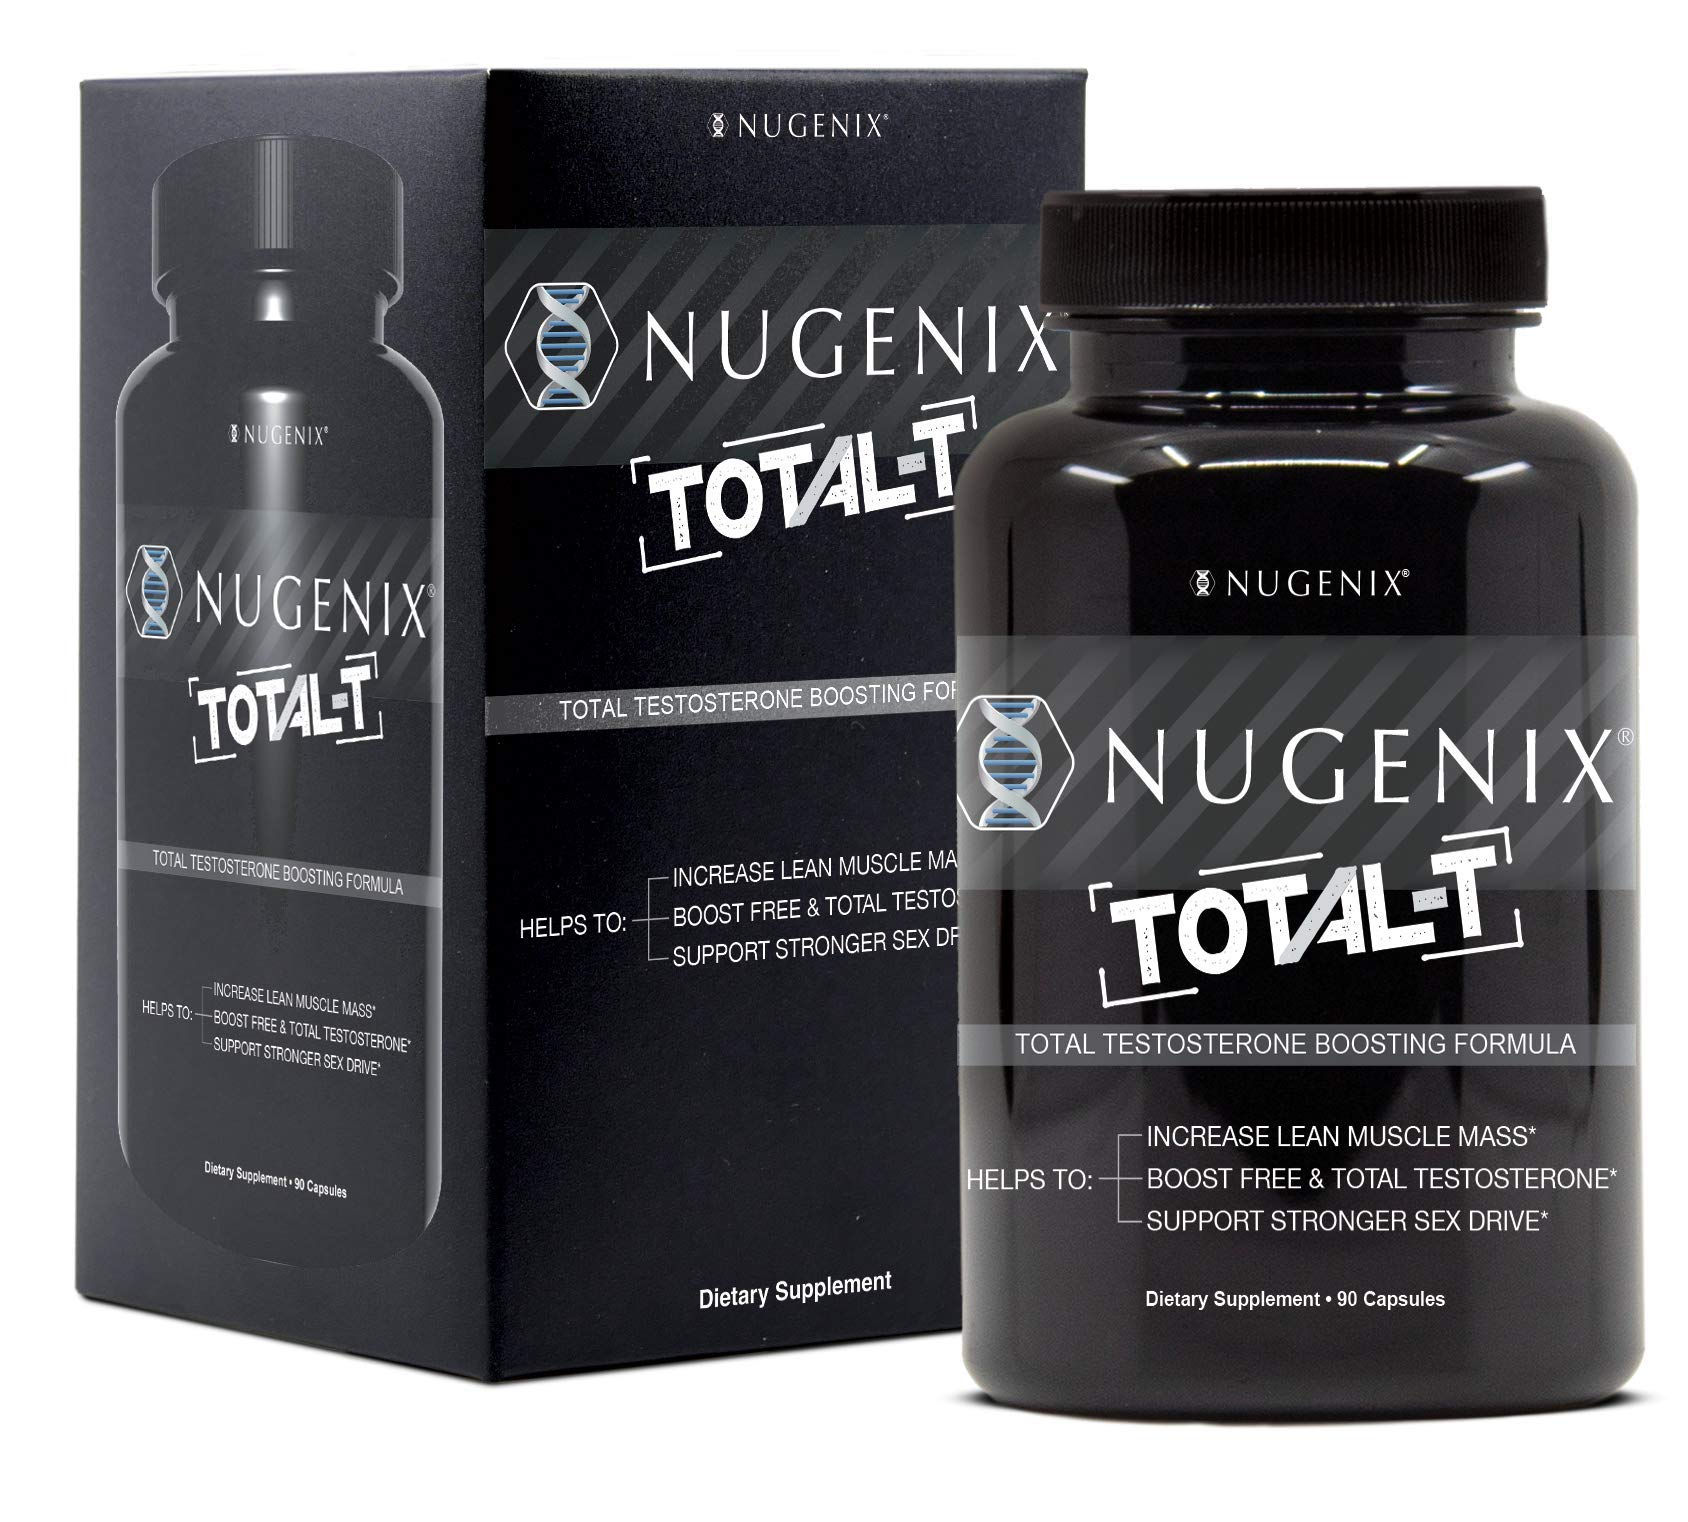 Nugenix Total-T: Men's Total Testosterone Boosting Formula. All New, High Potency, High Bioavailibility Testosterone Boosting Ingredients. Helps with Energy, Muscle, Libido, Stamina, and Drive by Nugenix